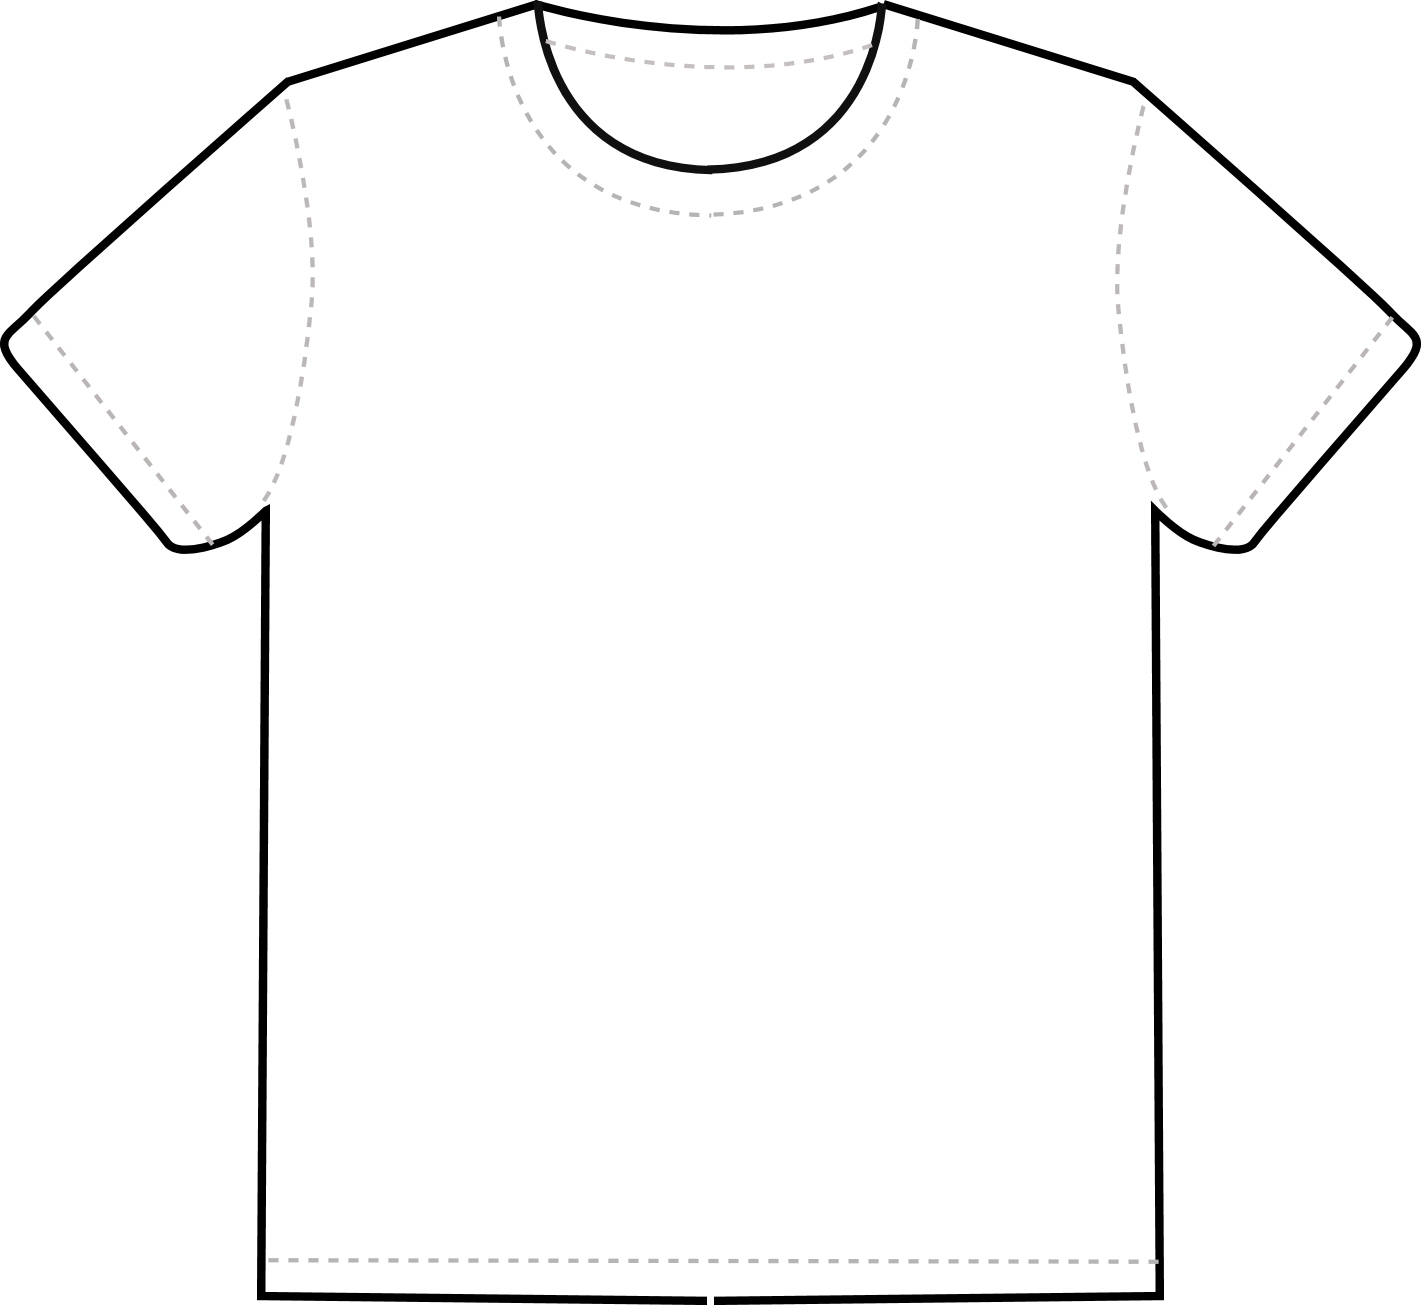 coloring picture shirt free art lessons and activities for kids coloring picture shirt